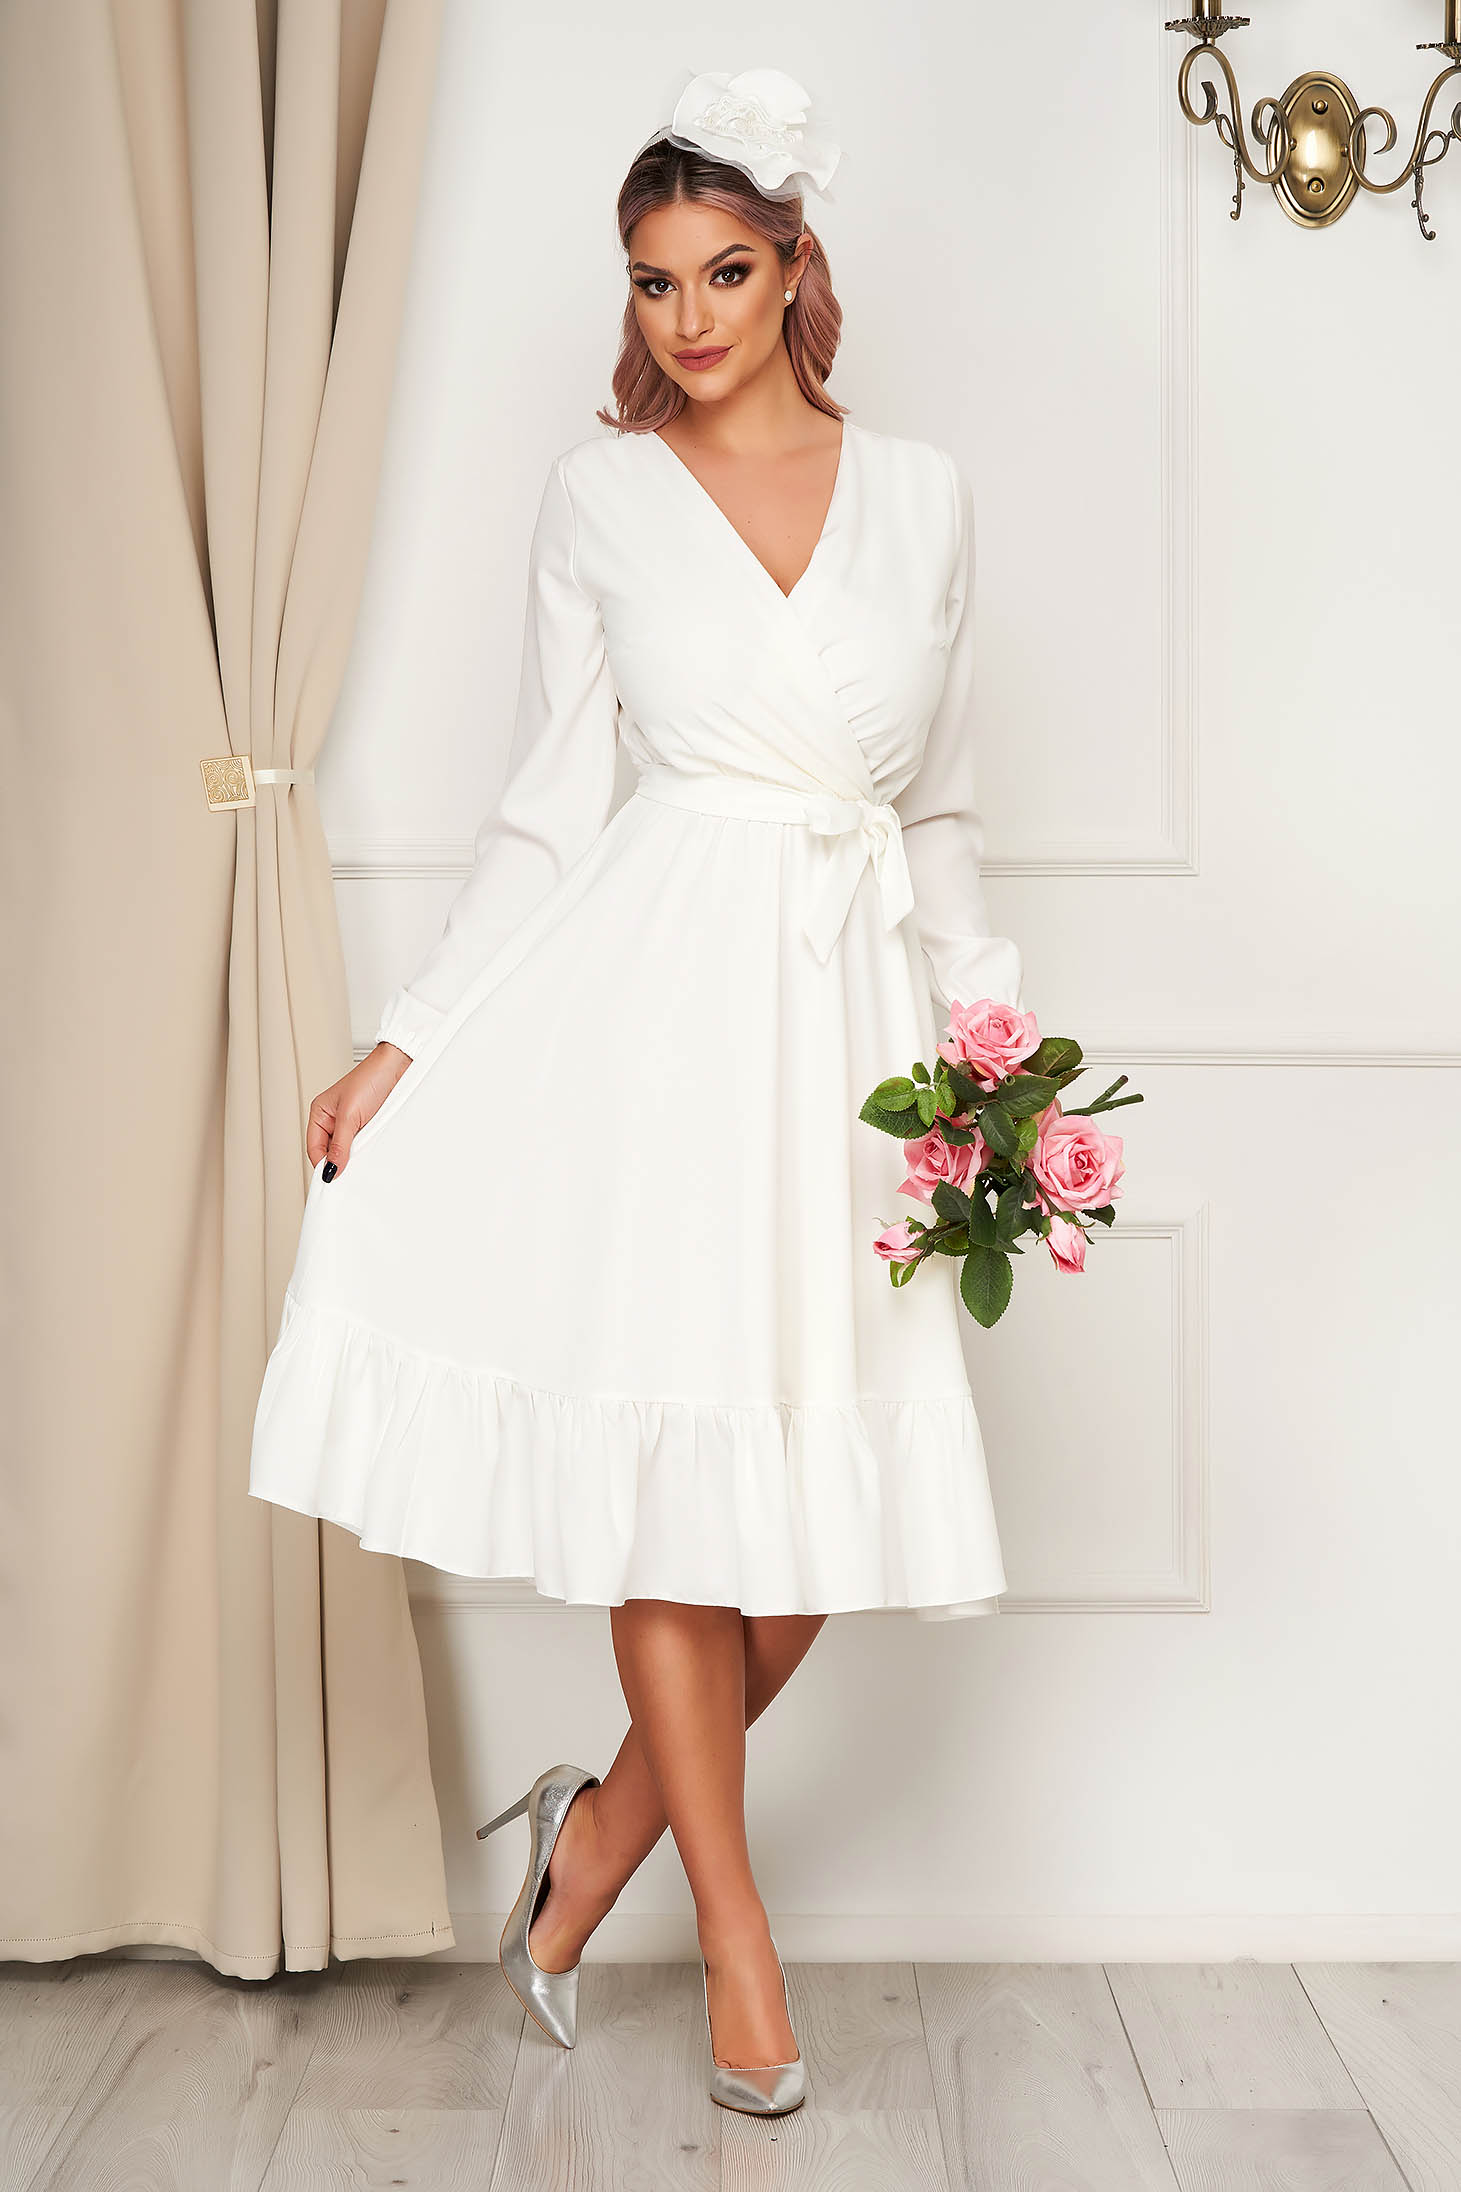 Dress StarShinerS white elegant midi wrap over front with elastic waist accessorized with tied waistband